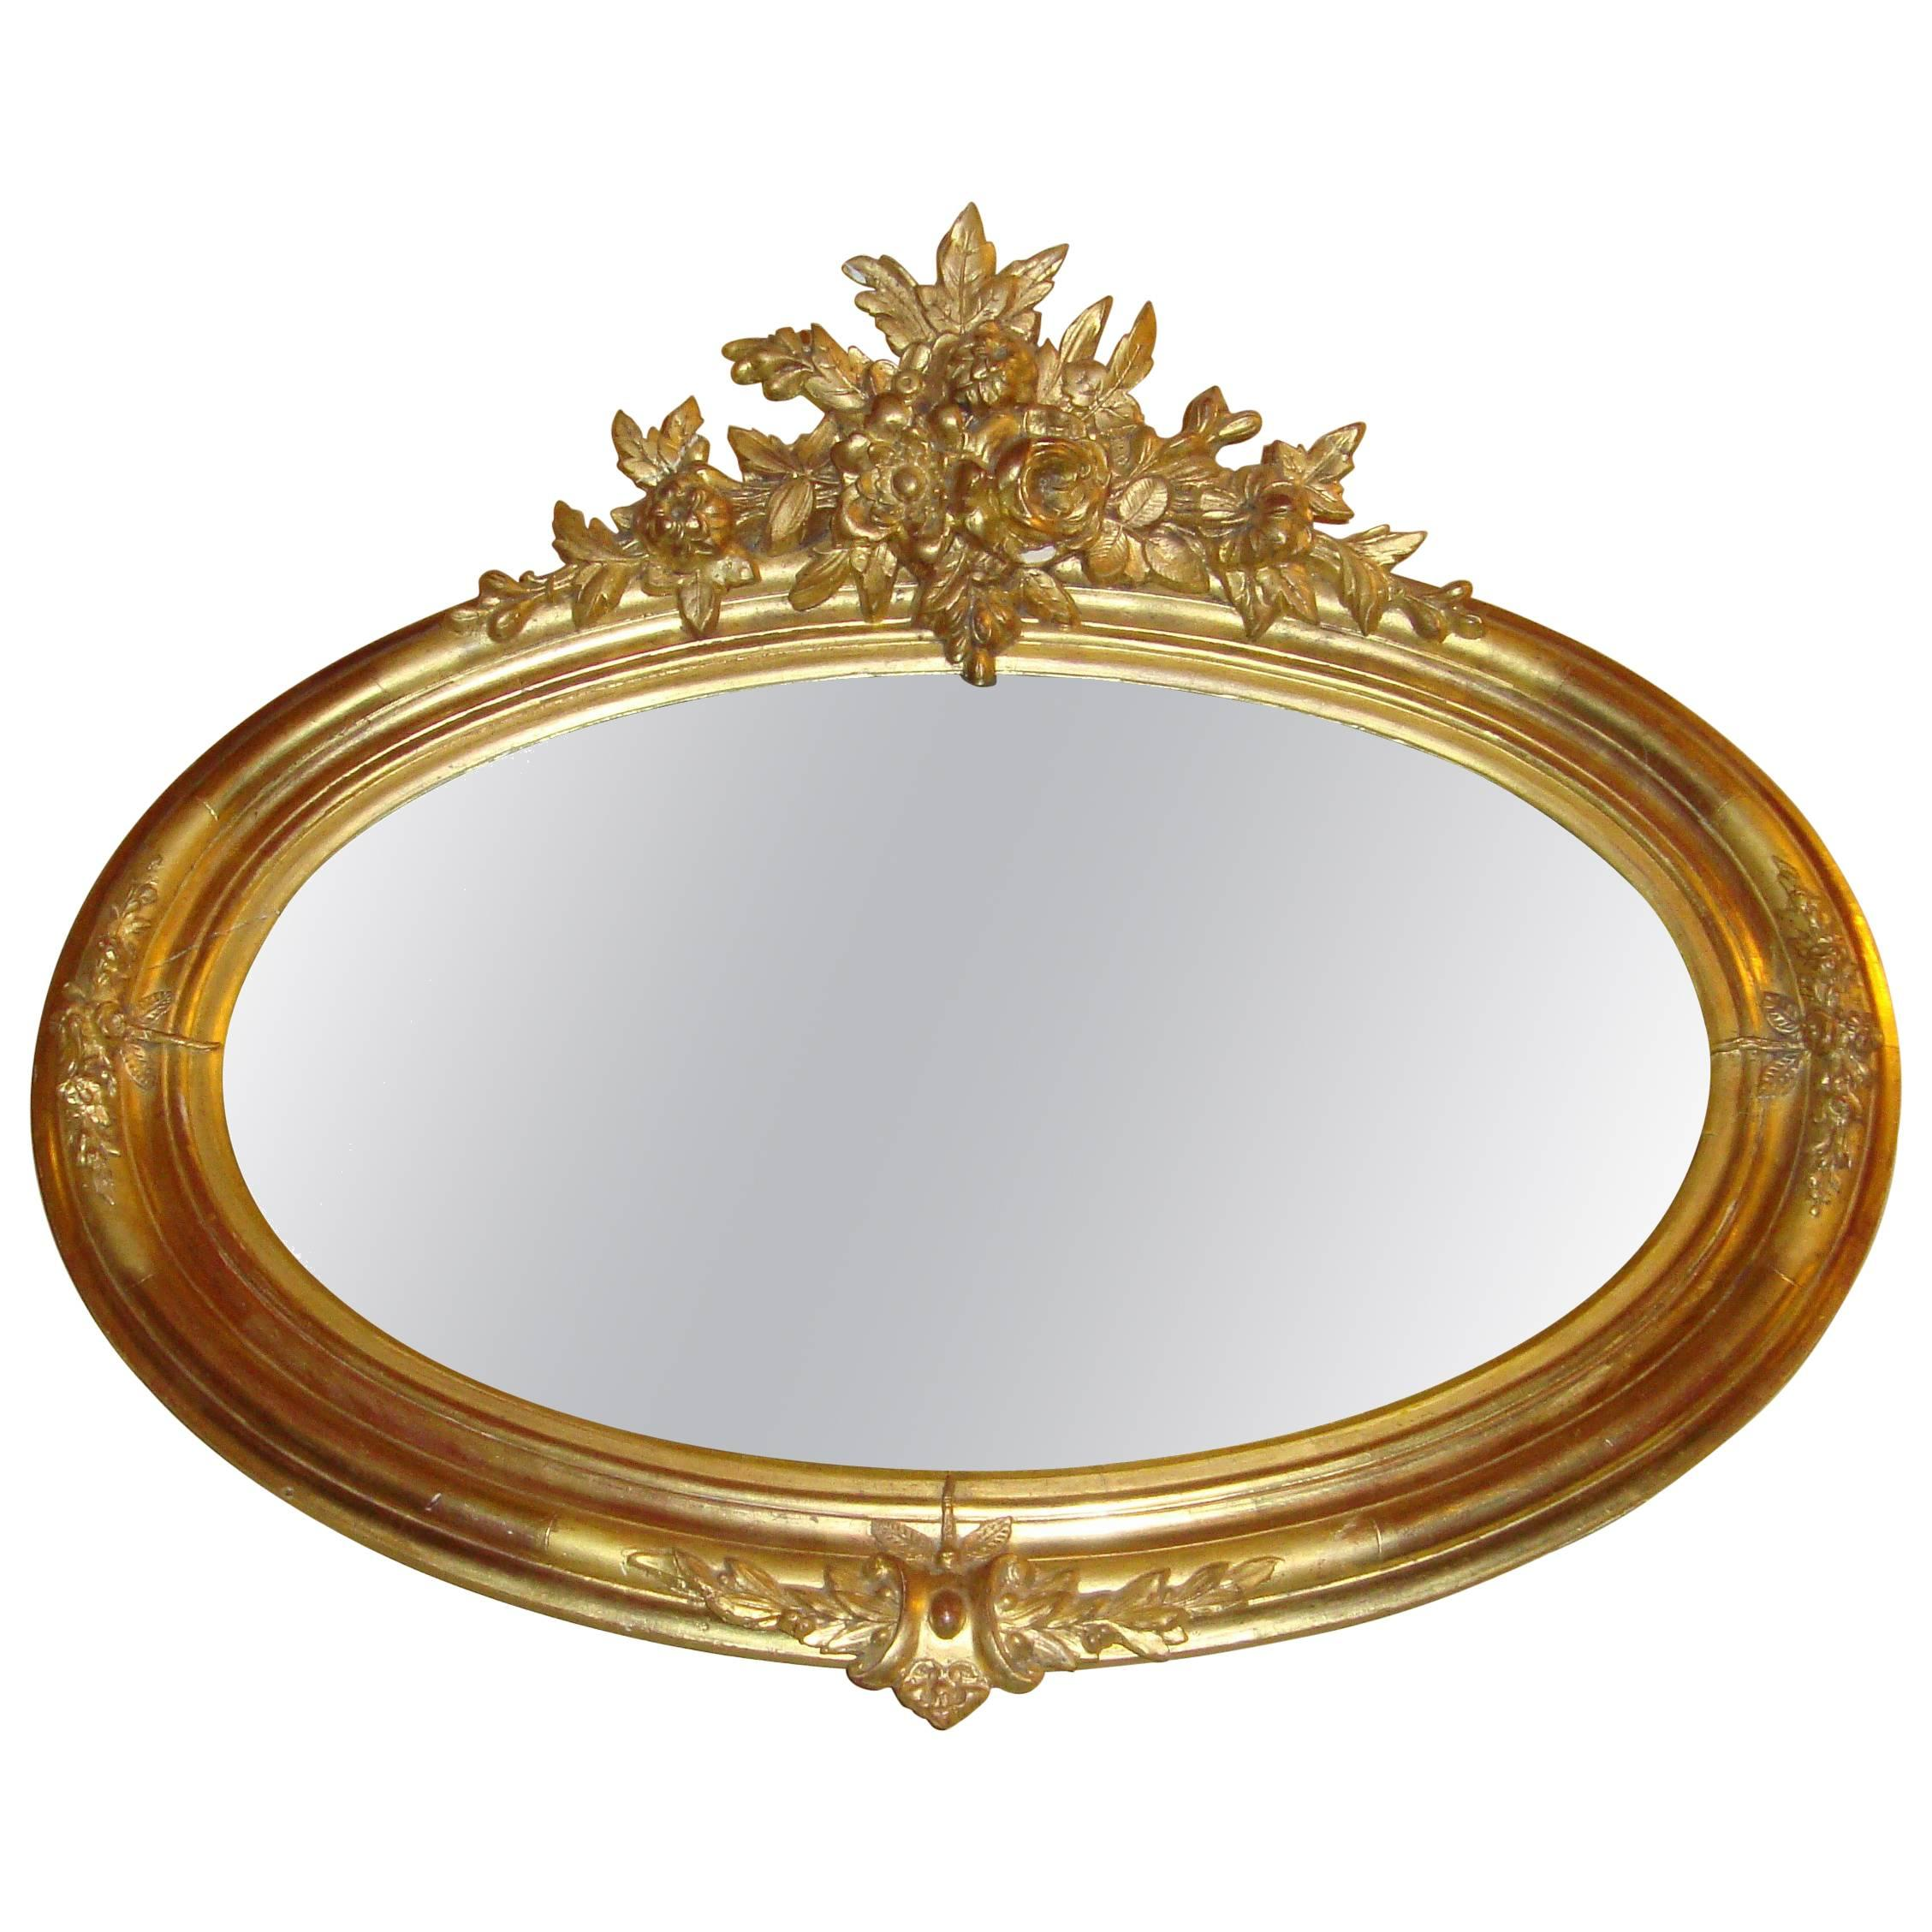 Oval Gilt Wooden over the Mantle or Wall Mirror